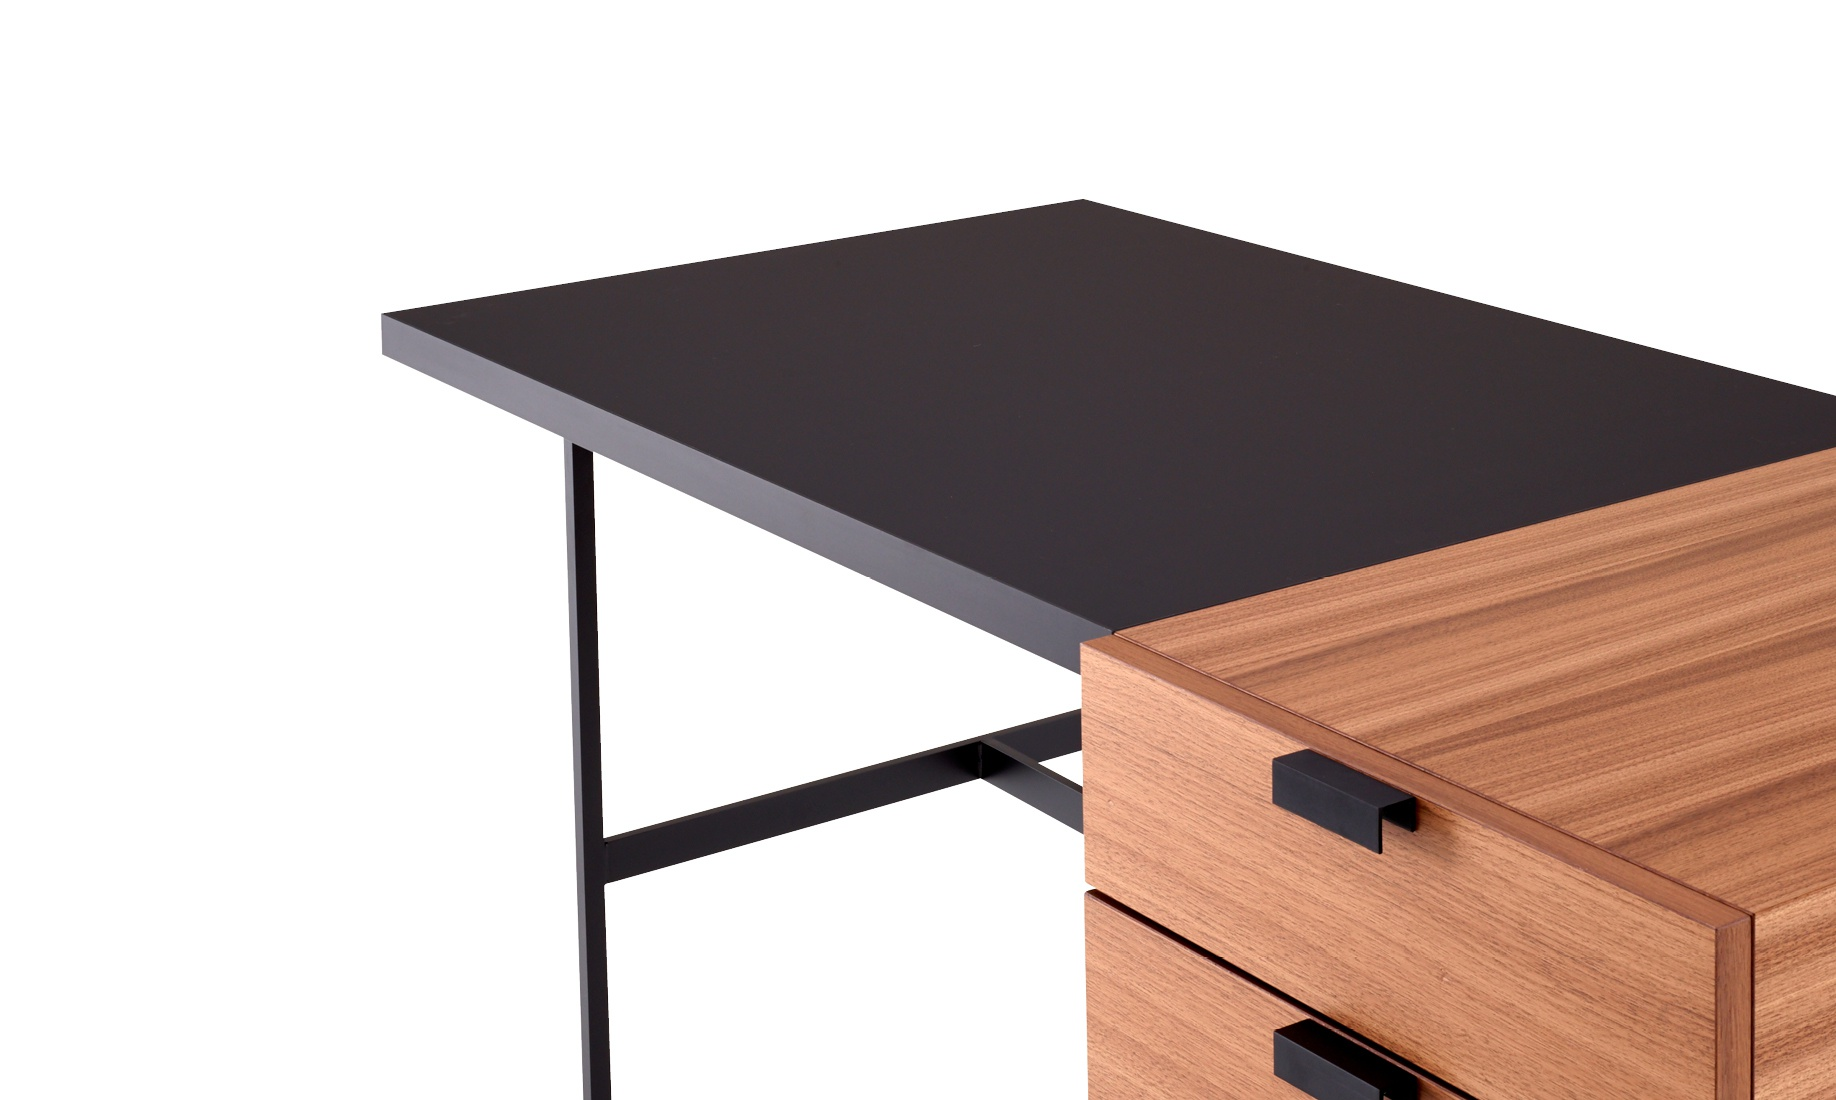 desks secretary ligne roset official site contemporary high end furniture. Black Bedroom Furniture Sets. Home Design Ideas